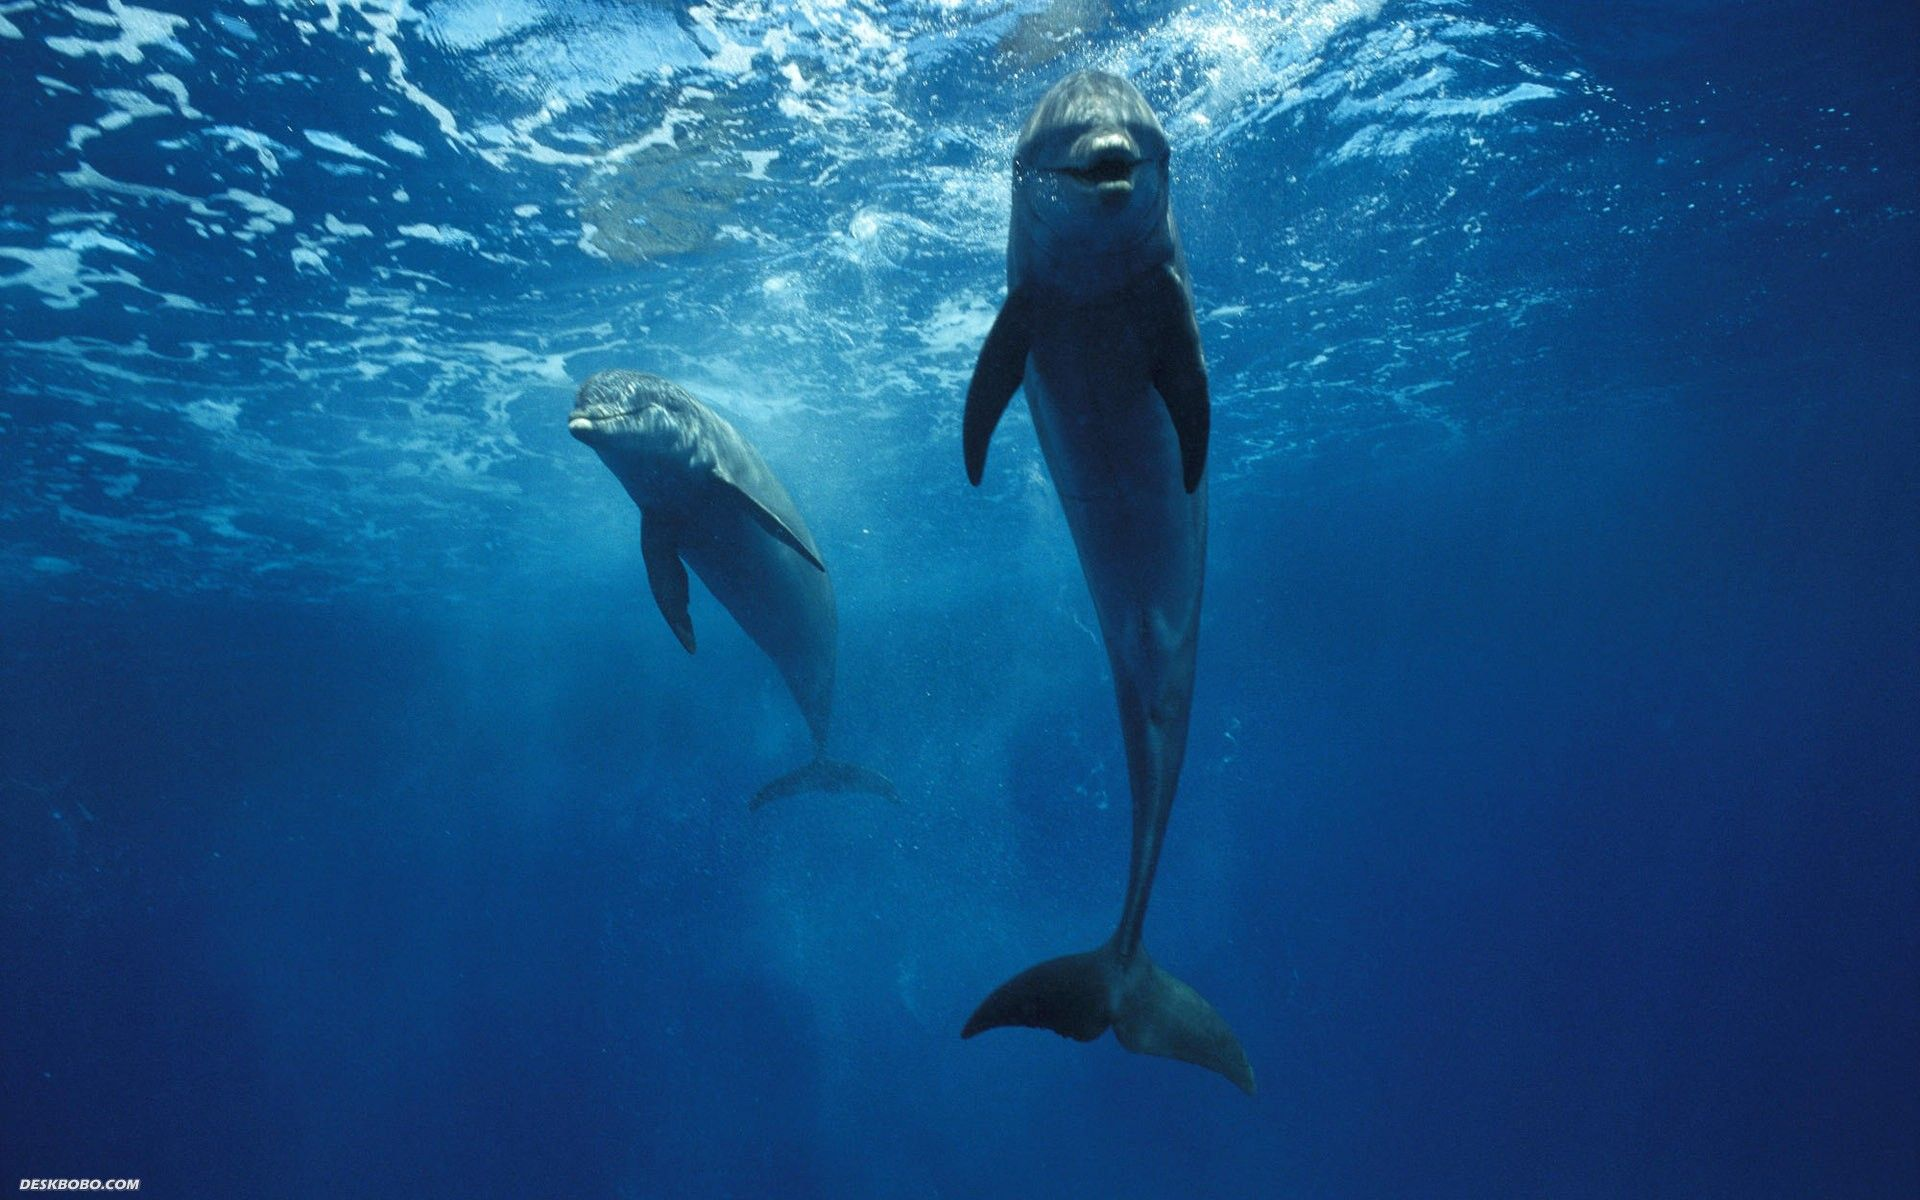 Who doesn't love the intoxicating and loving smile of a dolphin?!!! They are among the most beautiful creatures in the world (I think, anyway)!